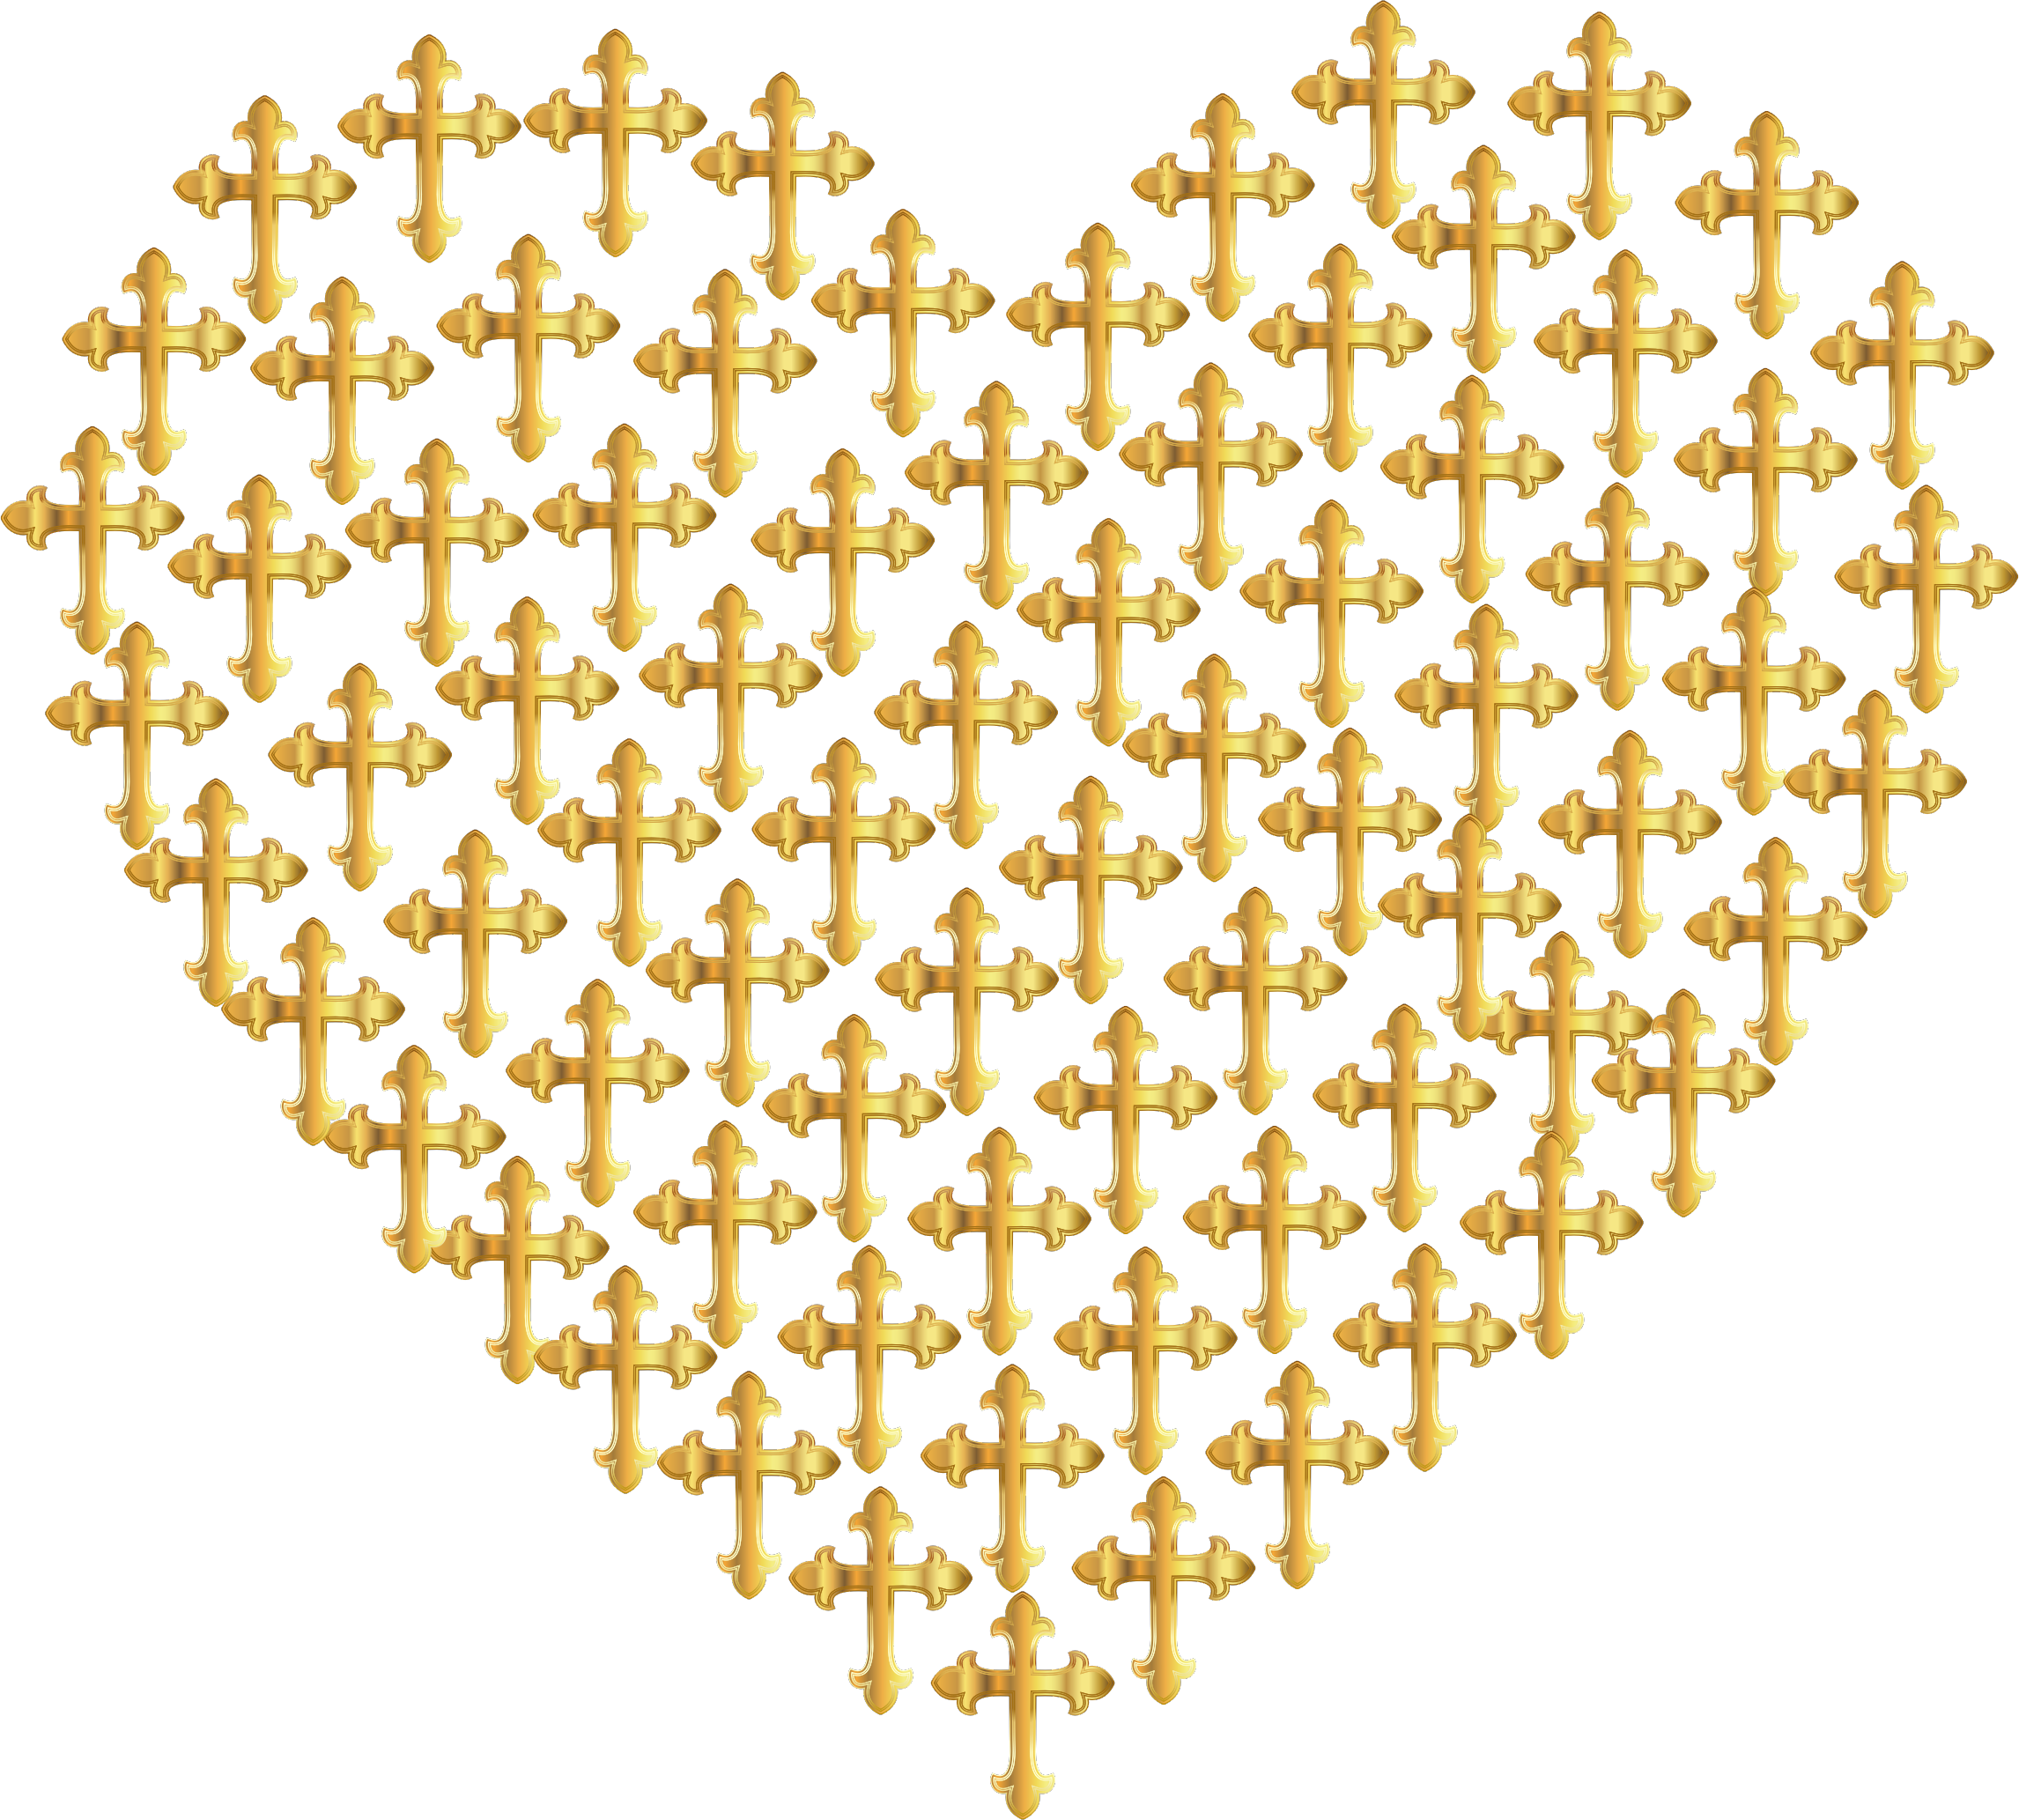 Cross and heart clipart with clear background clipart free library Clipart - Love Heart Crosses Gold No Background clipart free library